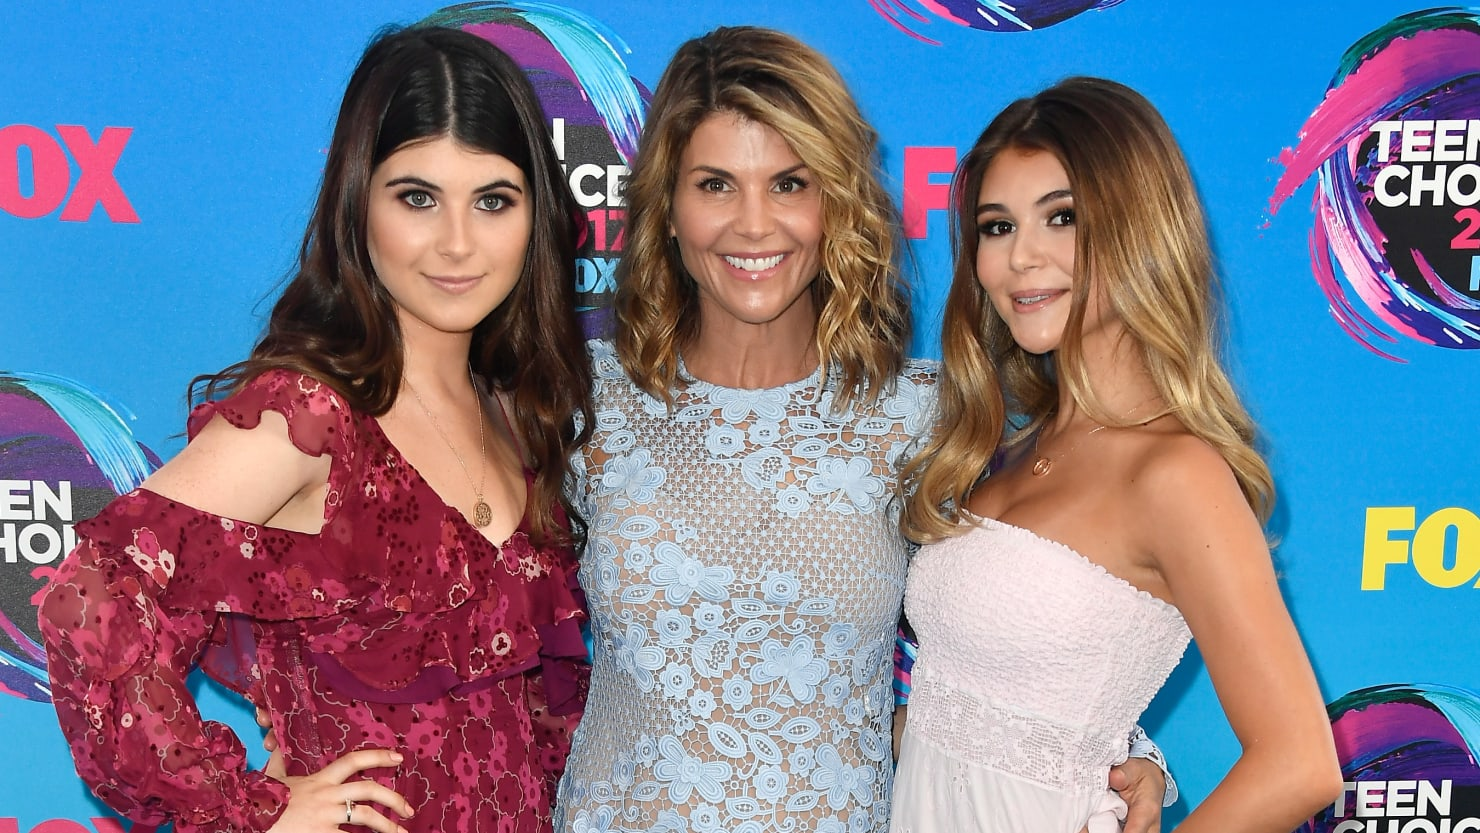 Fake Rowing Resume of Lori Loughlin's Daughter Revealed by Feds